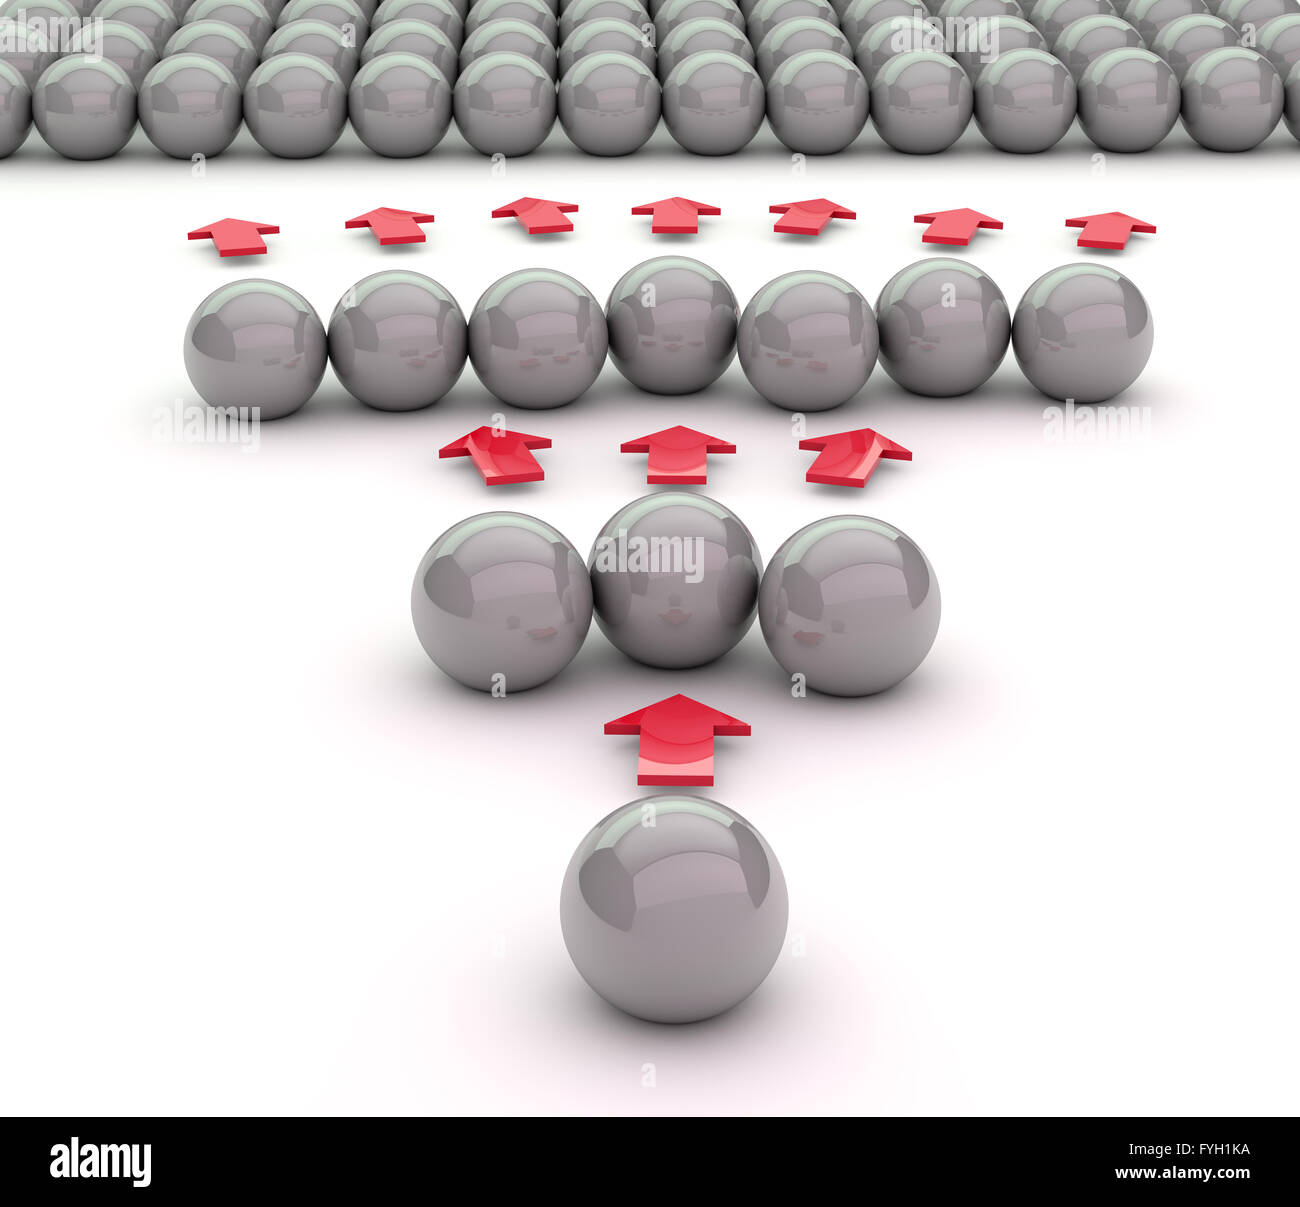 viral marketing concept. 3D illustration made with metal balls. - Stock Image